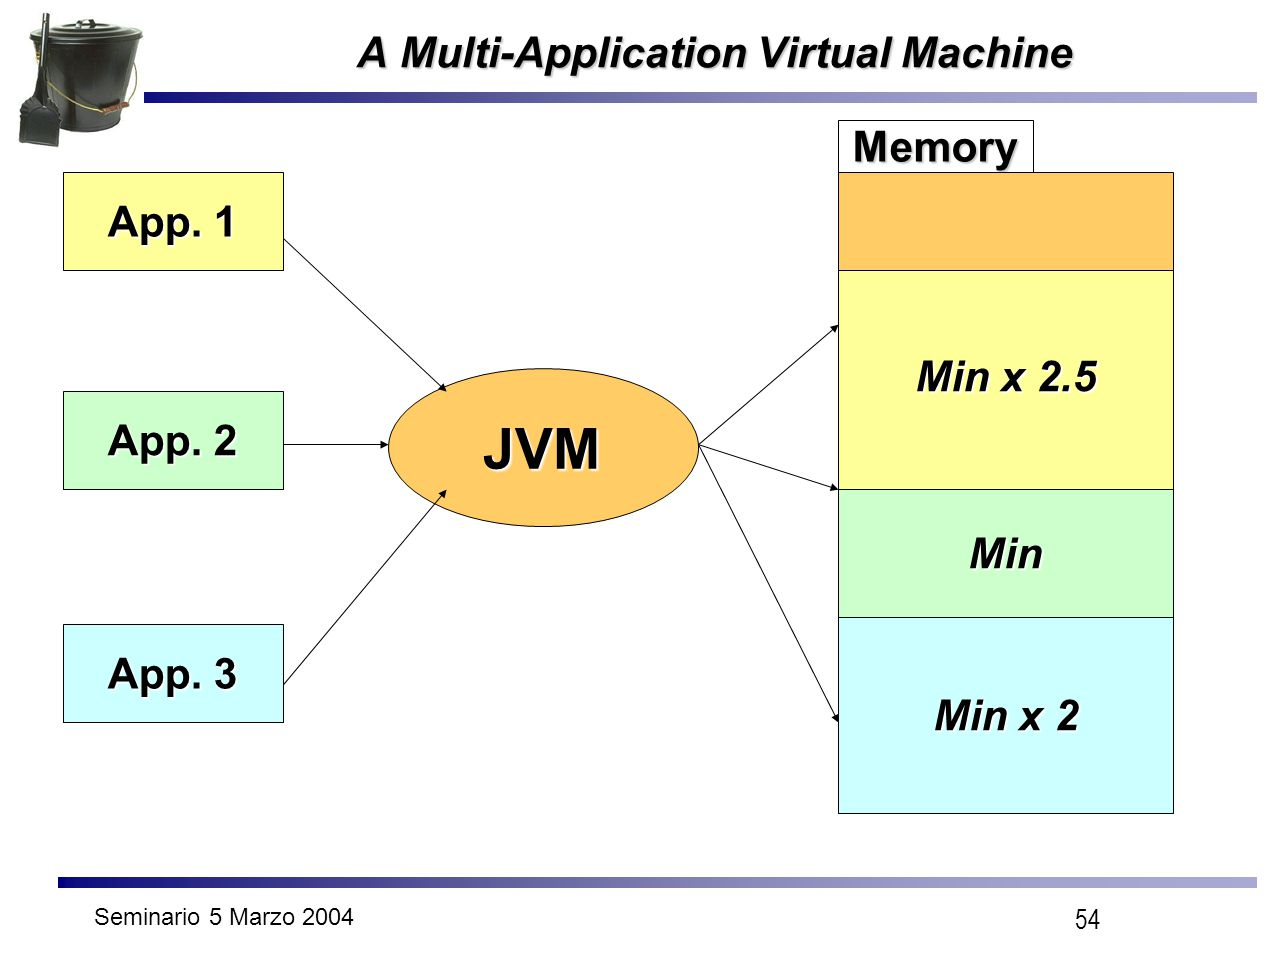 Seminario 5 Marzo 2004 54 A Multi-Application Virtual Machine JVM App. 1 App. 2 App. 3 Min x 2.5 Min Min x 2 Memory